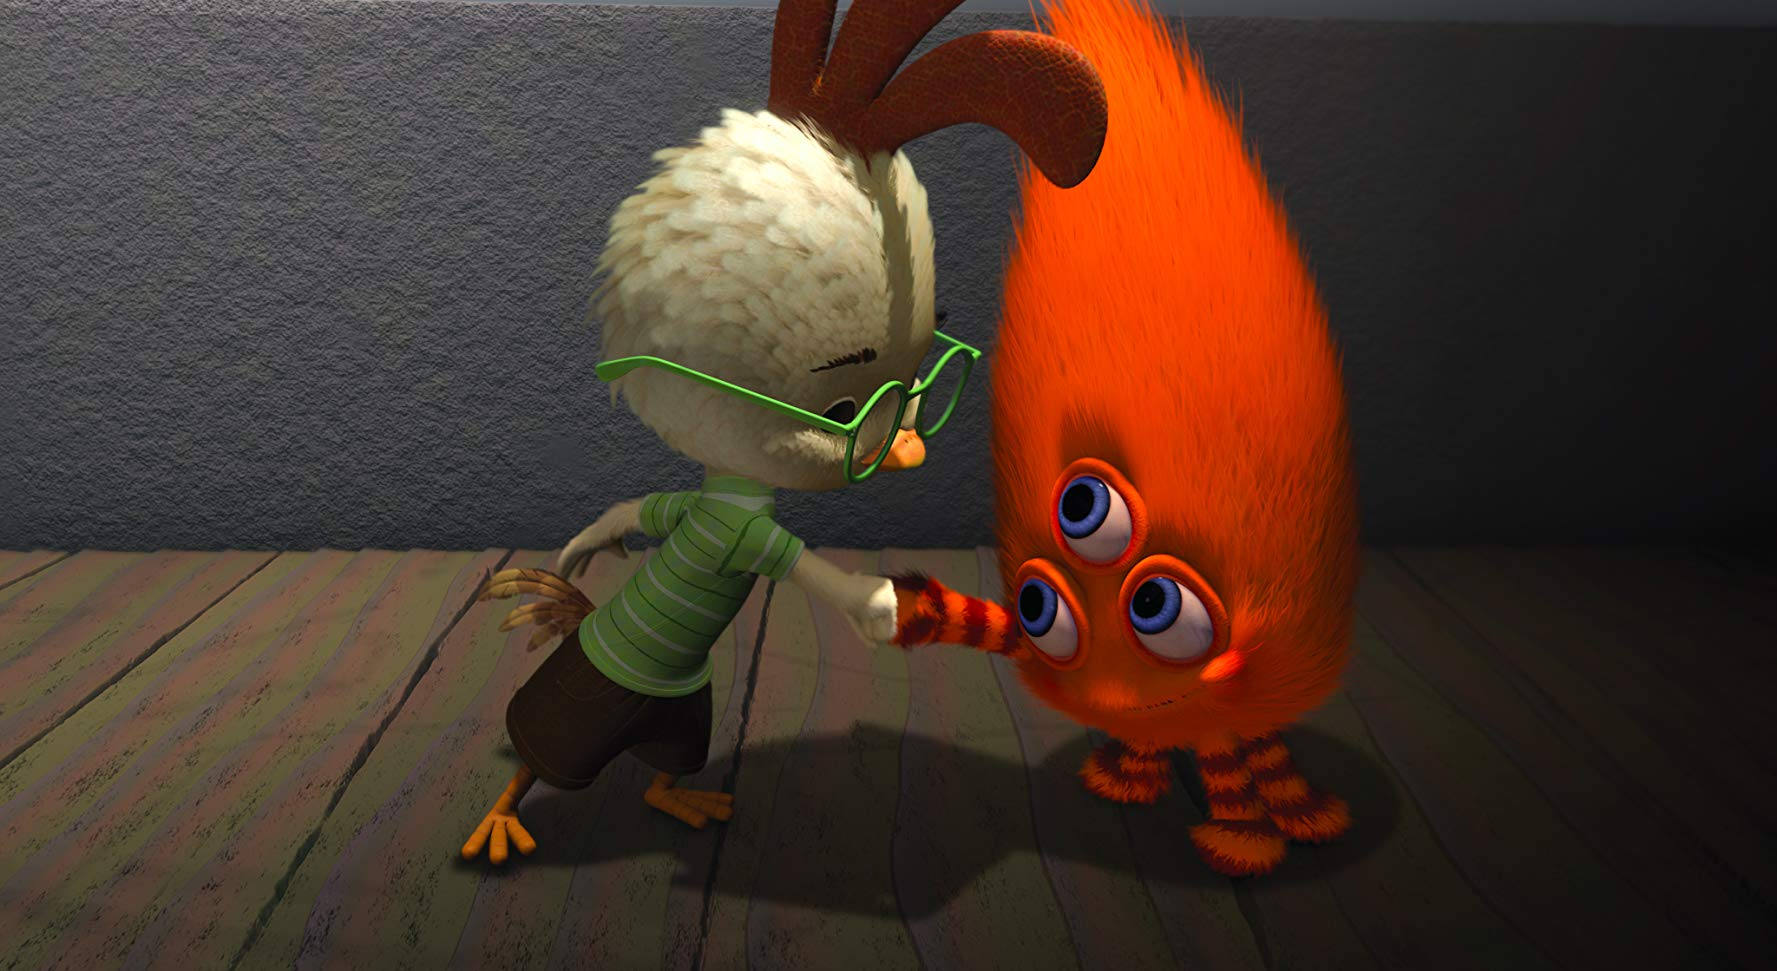 Chicken Little (voiced by Zach Braff) greets the alien visitors in Chicken Little (2005)